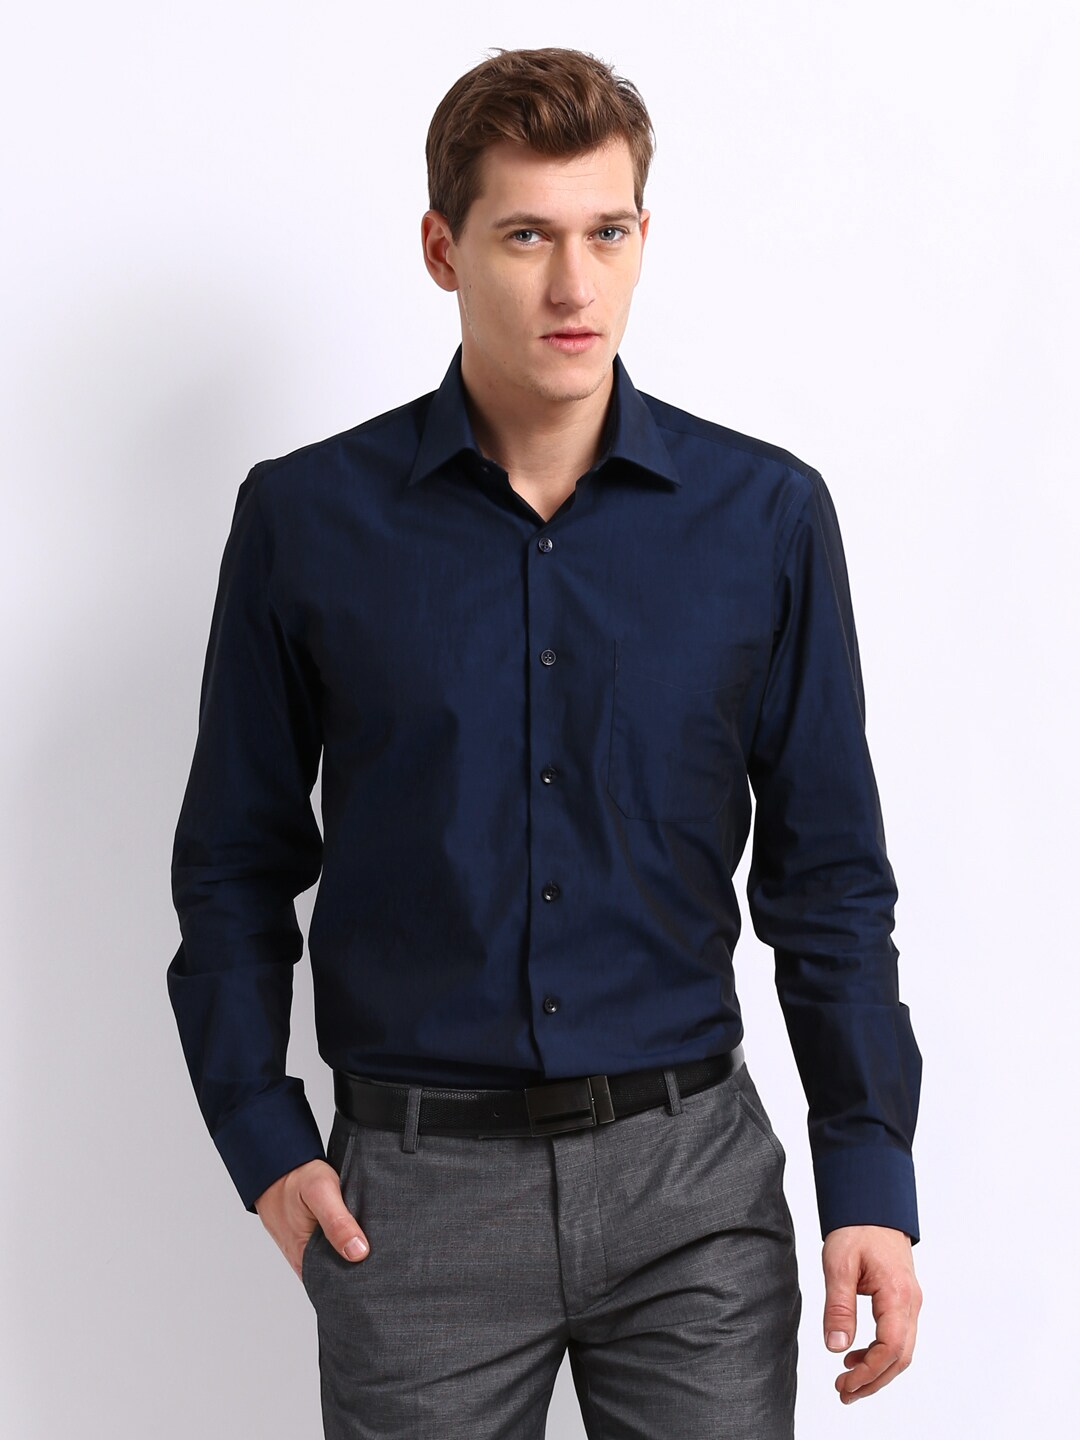 Blue Dress Shirts for Men at Macy's come in a variety of styles and sizes. Shop top brands for Men's Dress Shirts and find the perfect fit today. Macy's Presents: The Edit- A curated mix of fashion and inspiration Check It Out. Free Shipping with $49 purchase + Free Store Pickup. Contiguous US.